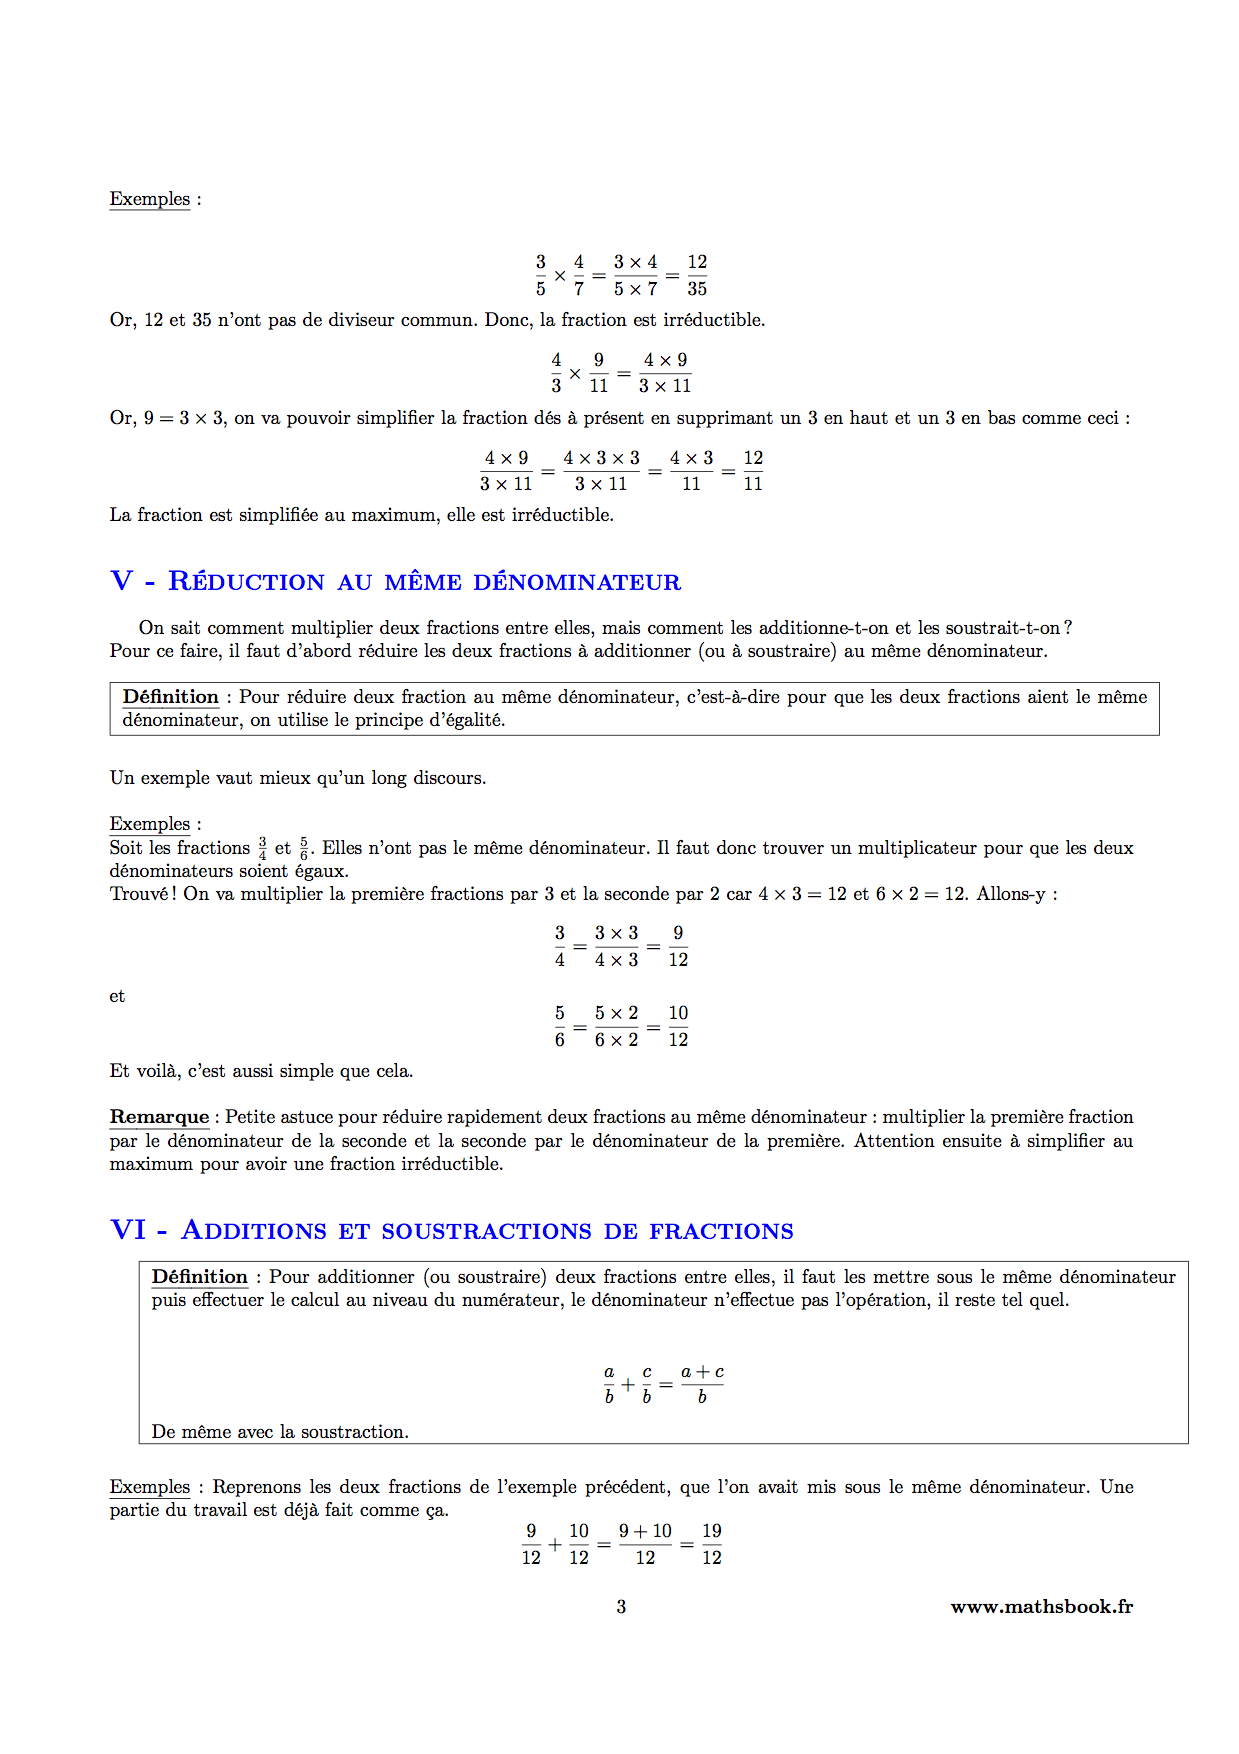 fractions reduction au meme denominateur